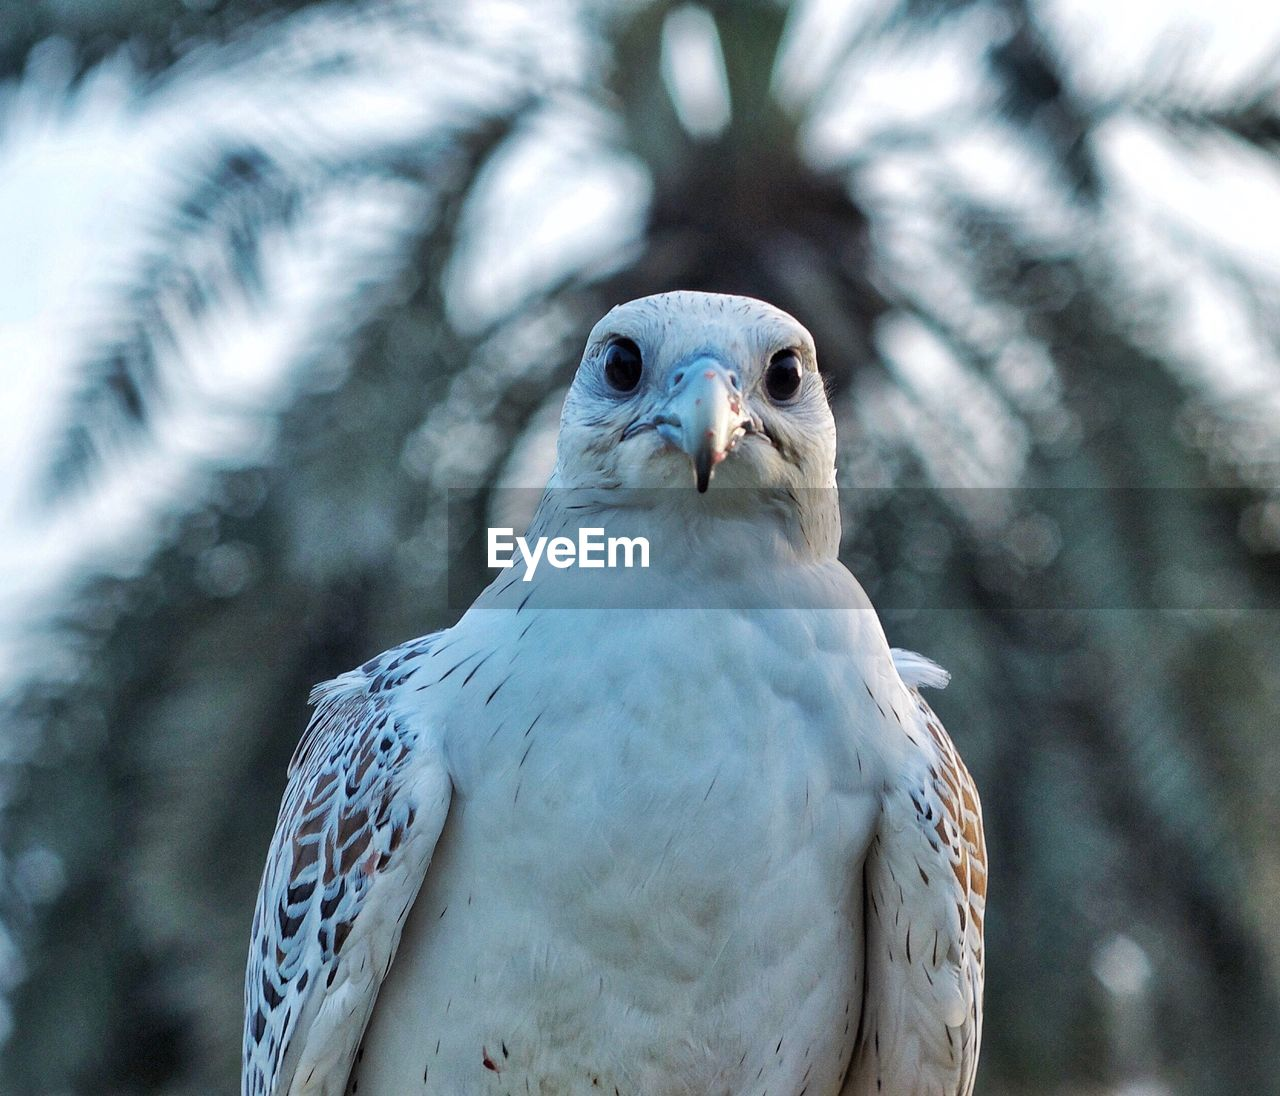 animal themes, animal, one animal, vertebrate, animal wildlife, bird, animals in the wild, close-up, focus on foreground, bird of prey, day, no people, nature, portrait, outdoors, looking at camera, looking, beak, front view, animal head, falcon - bird, eagle, animal eye